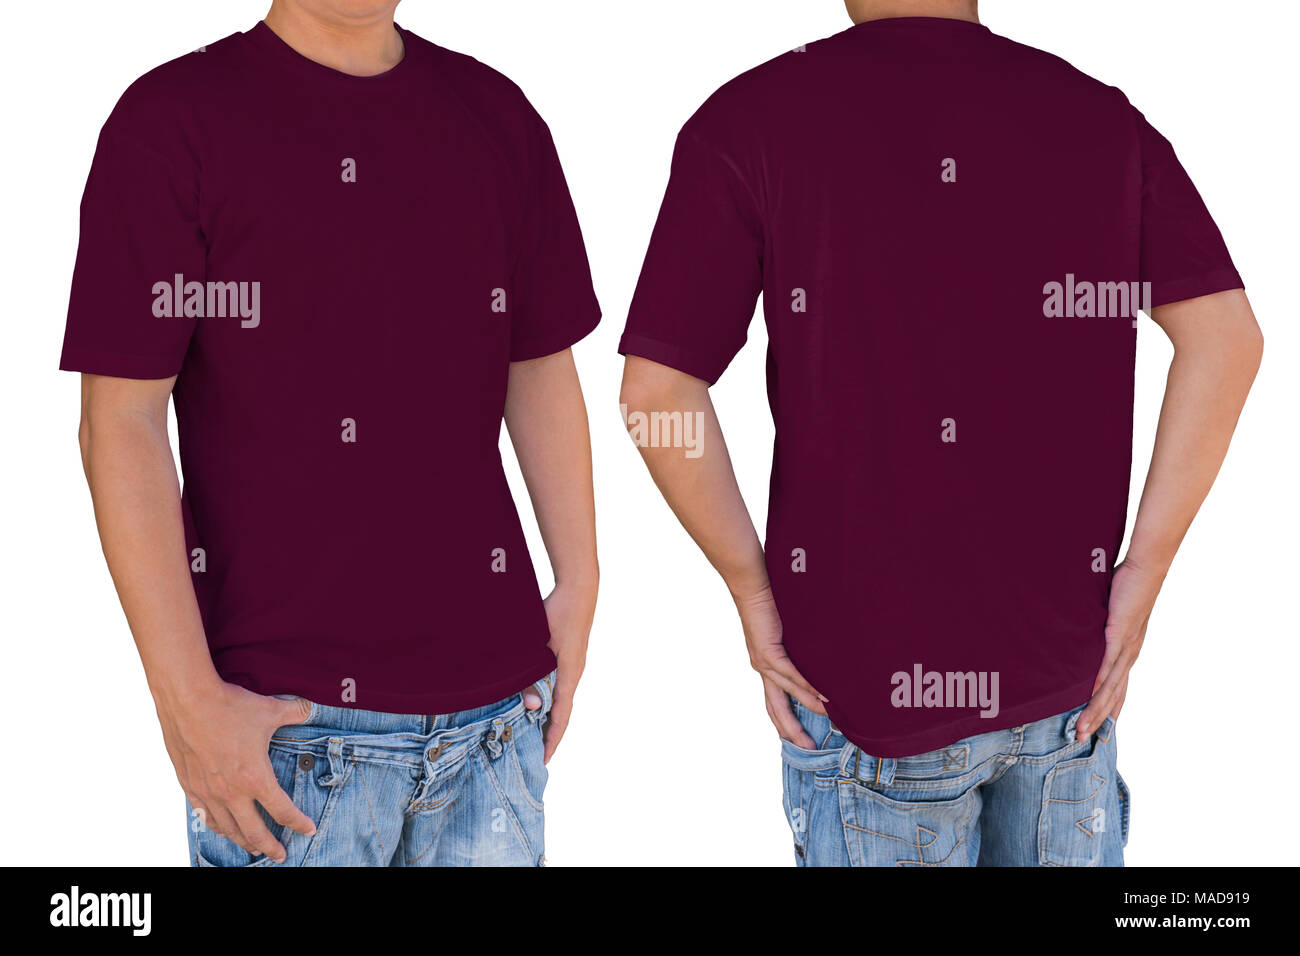 Man wearing blank dark red magenta color t-shirt with clipping path, front and back view. Template for insert logo, pattern, or artwork. - Stock Image